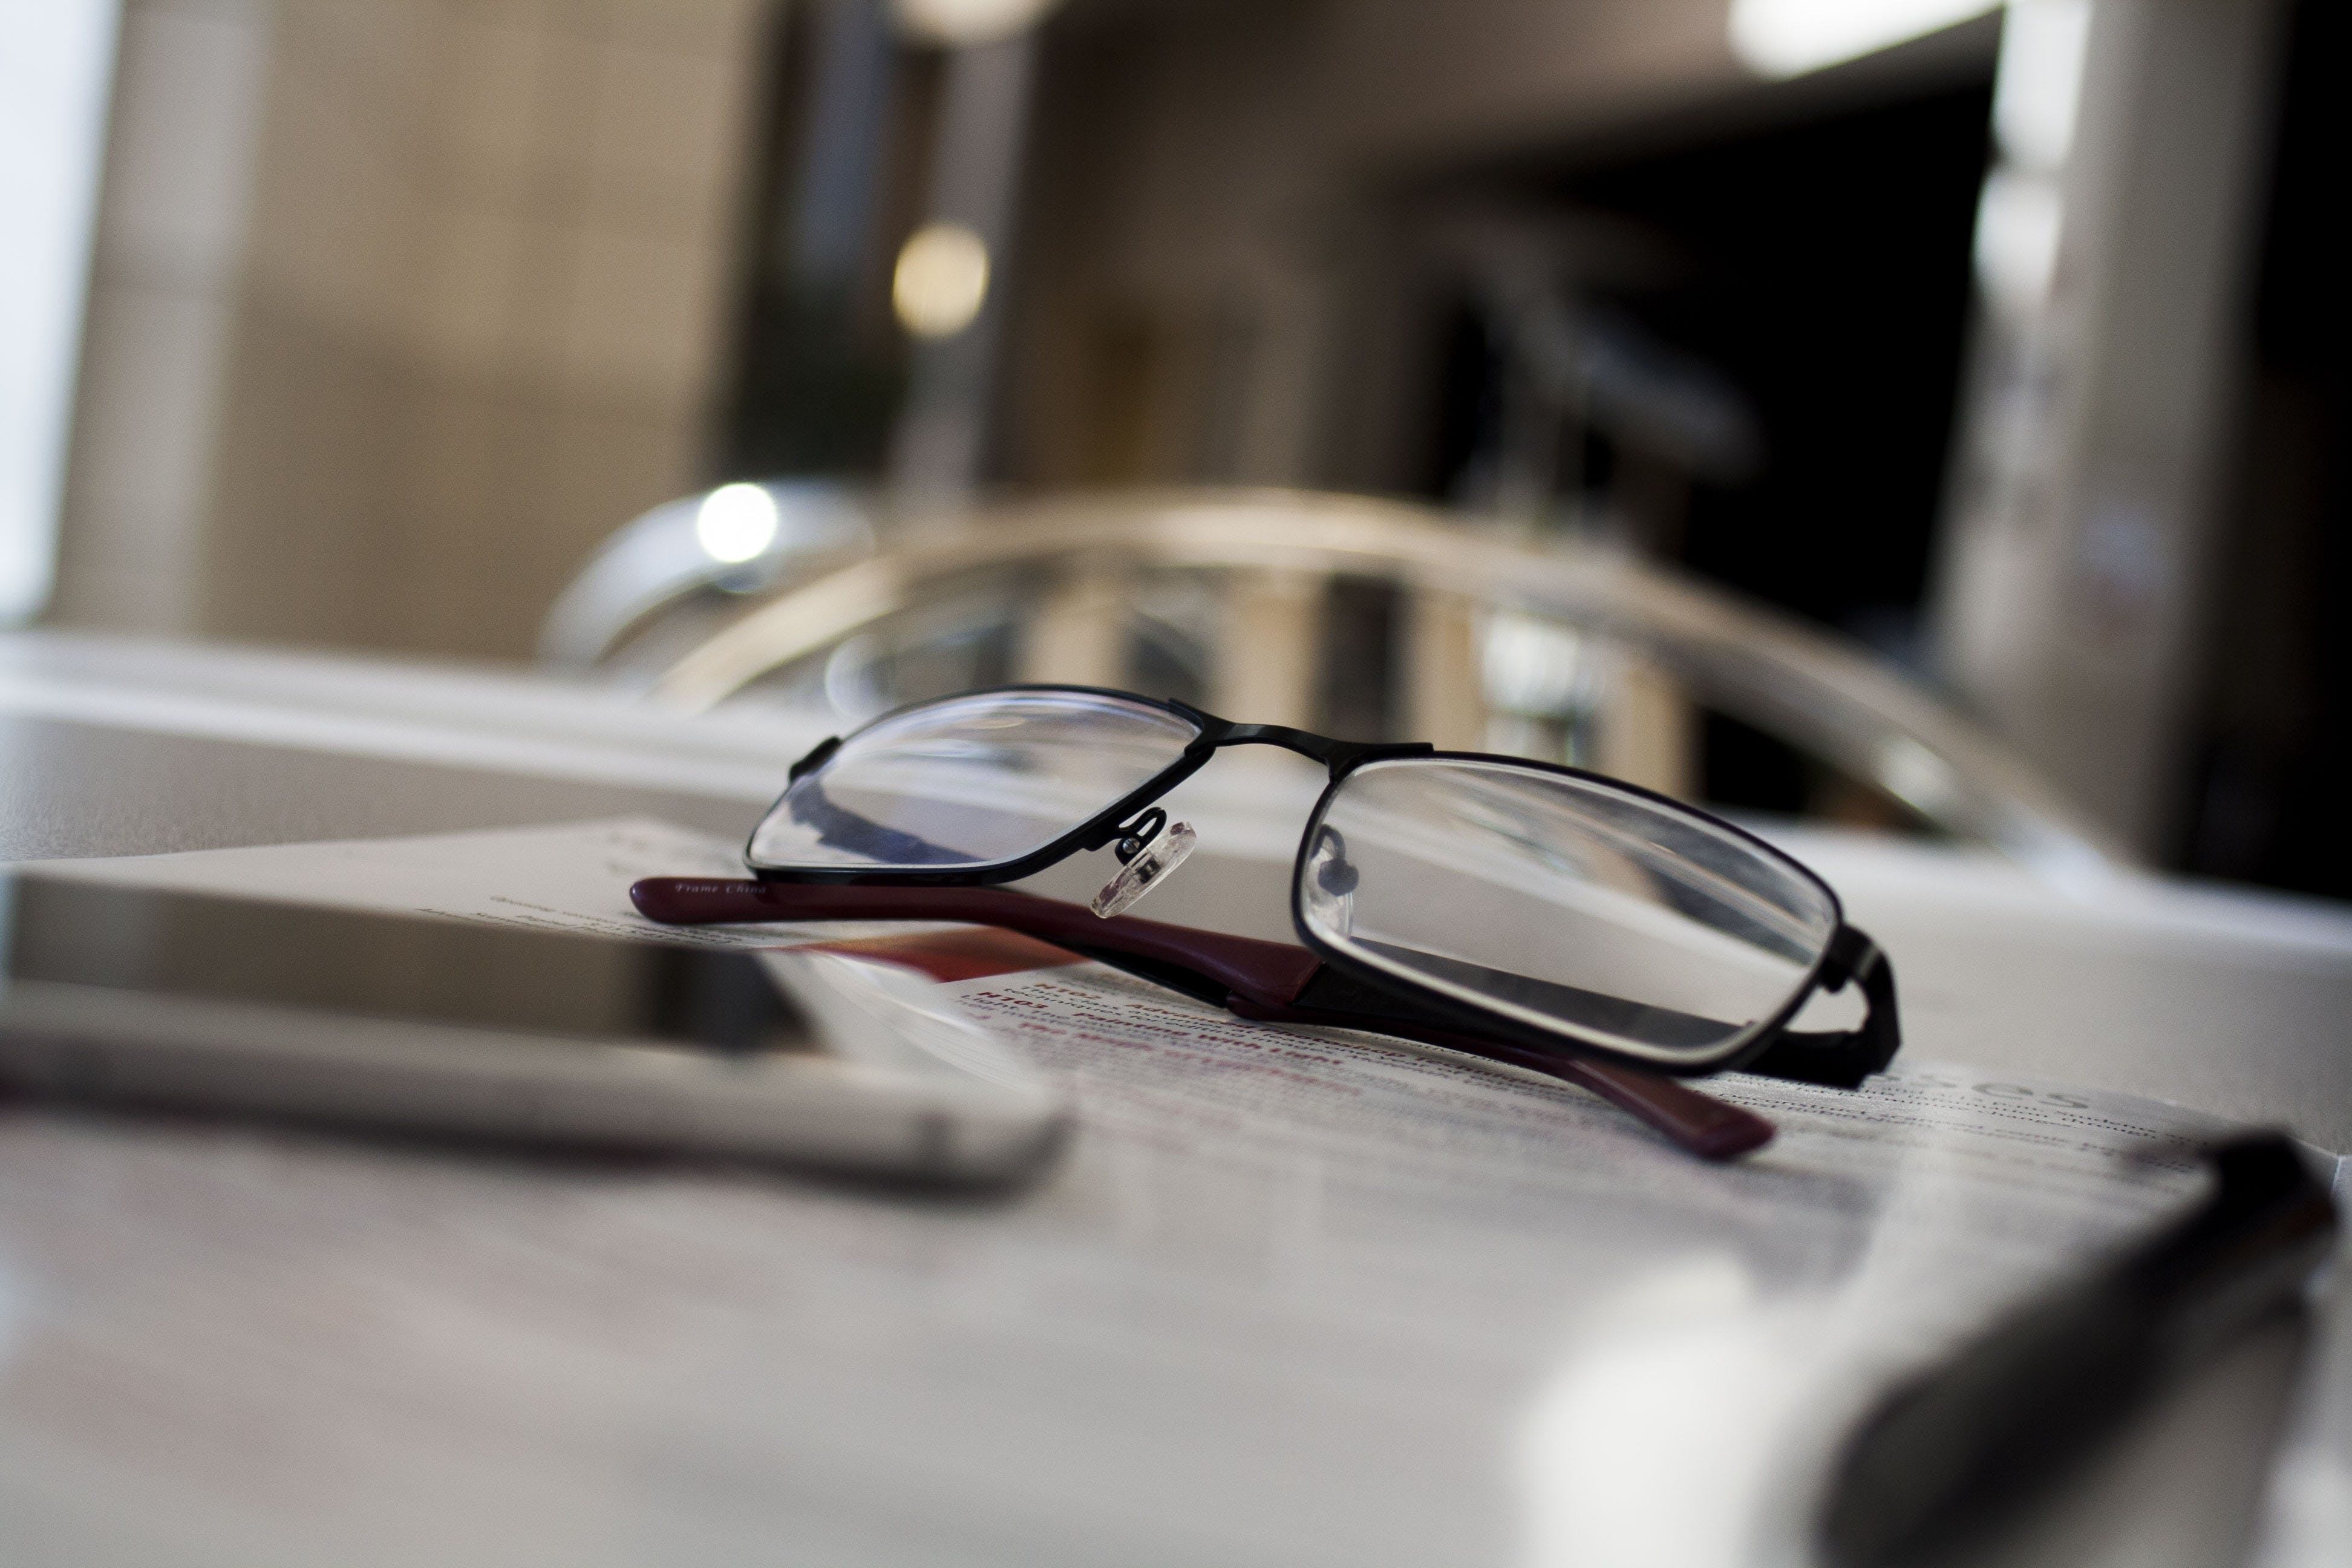 Free stock photo of pen, table, technology, glasses